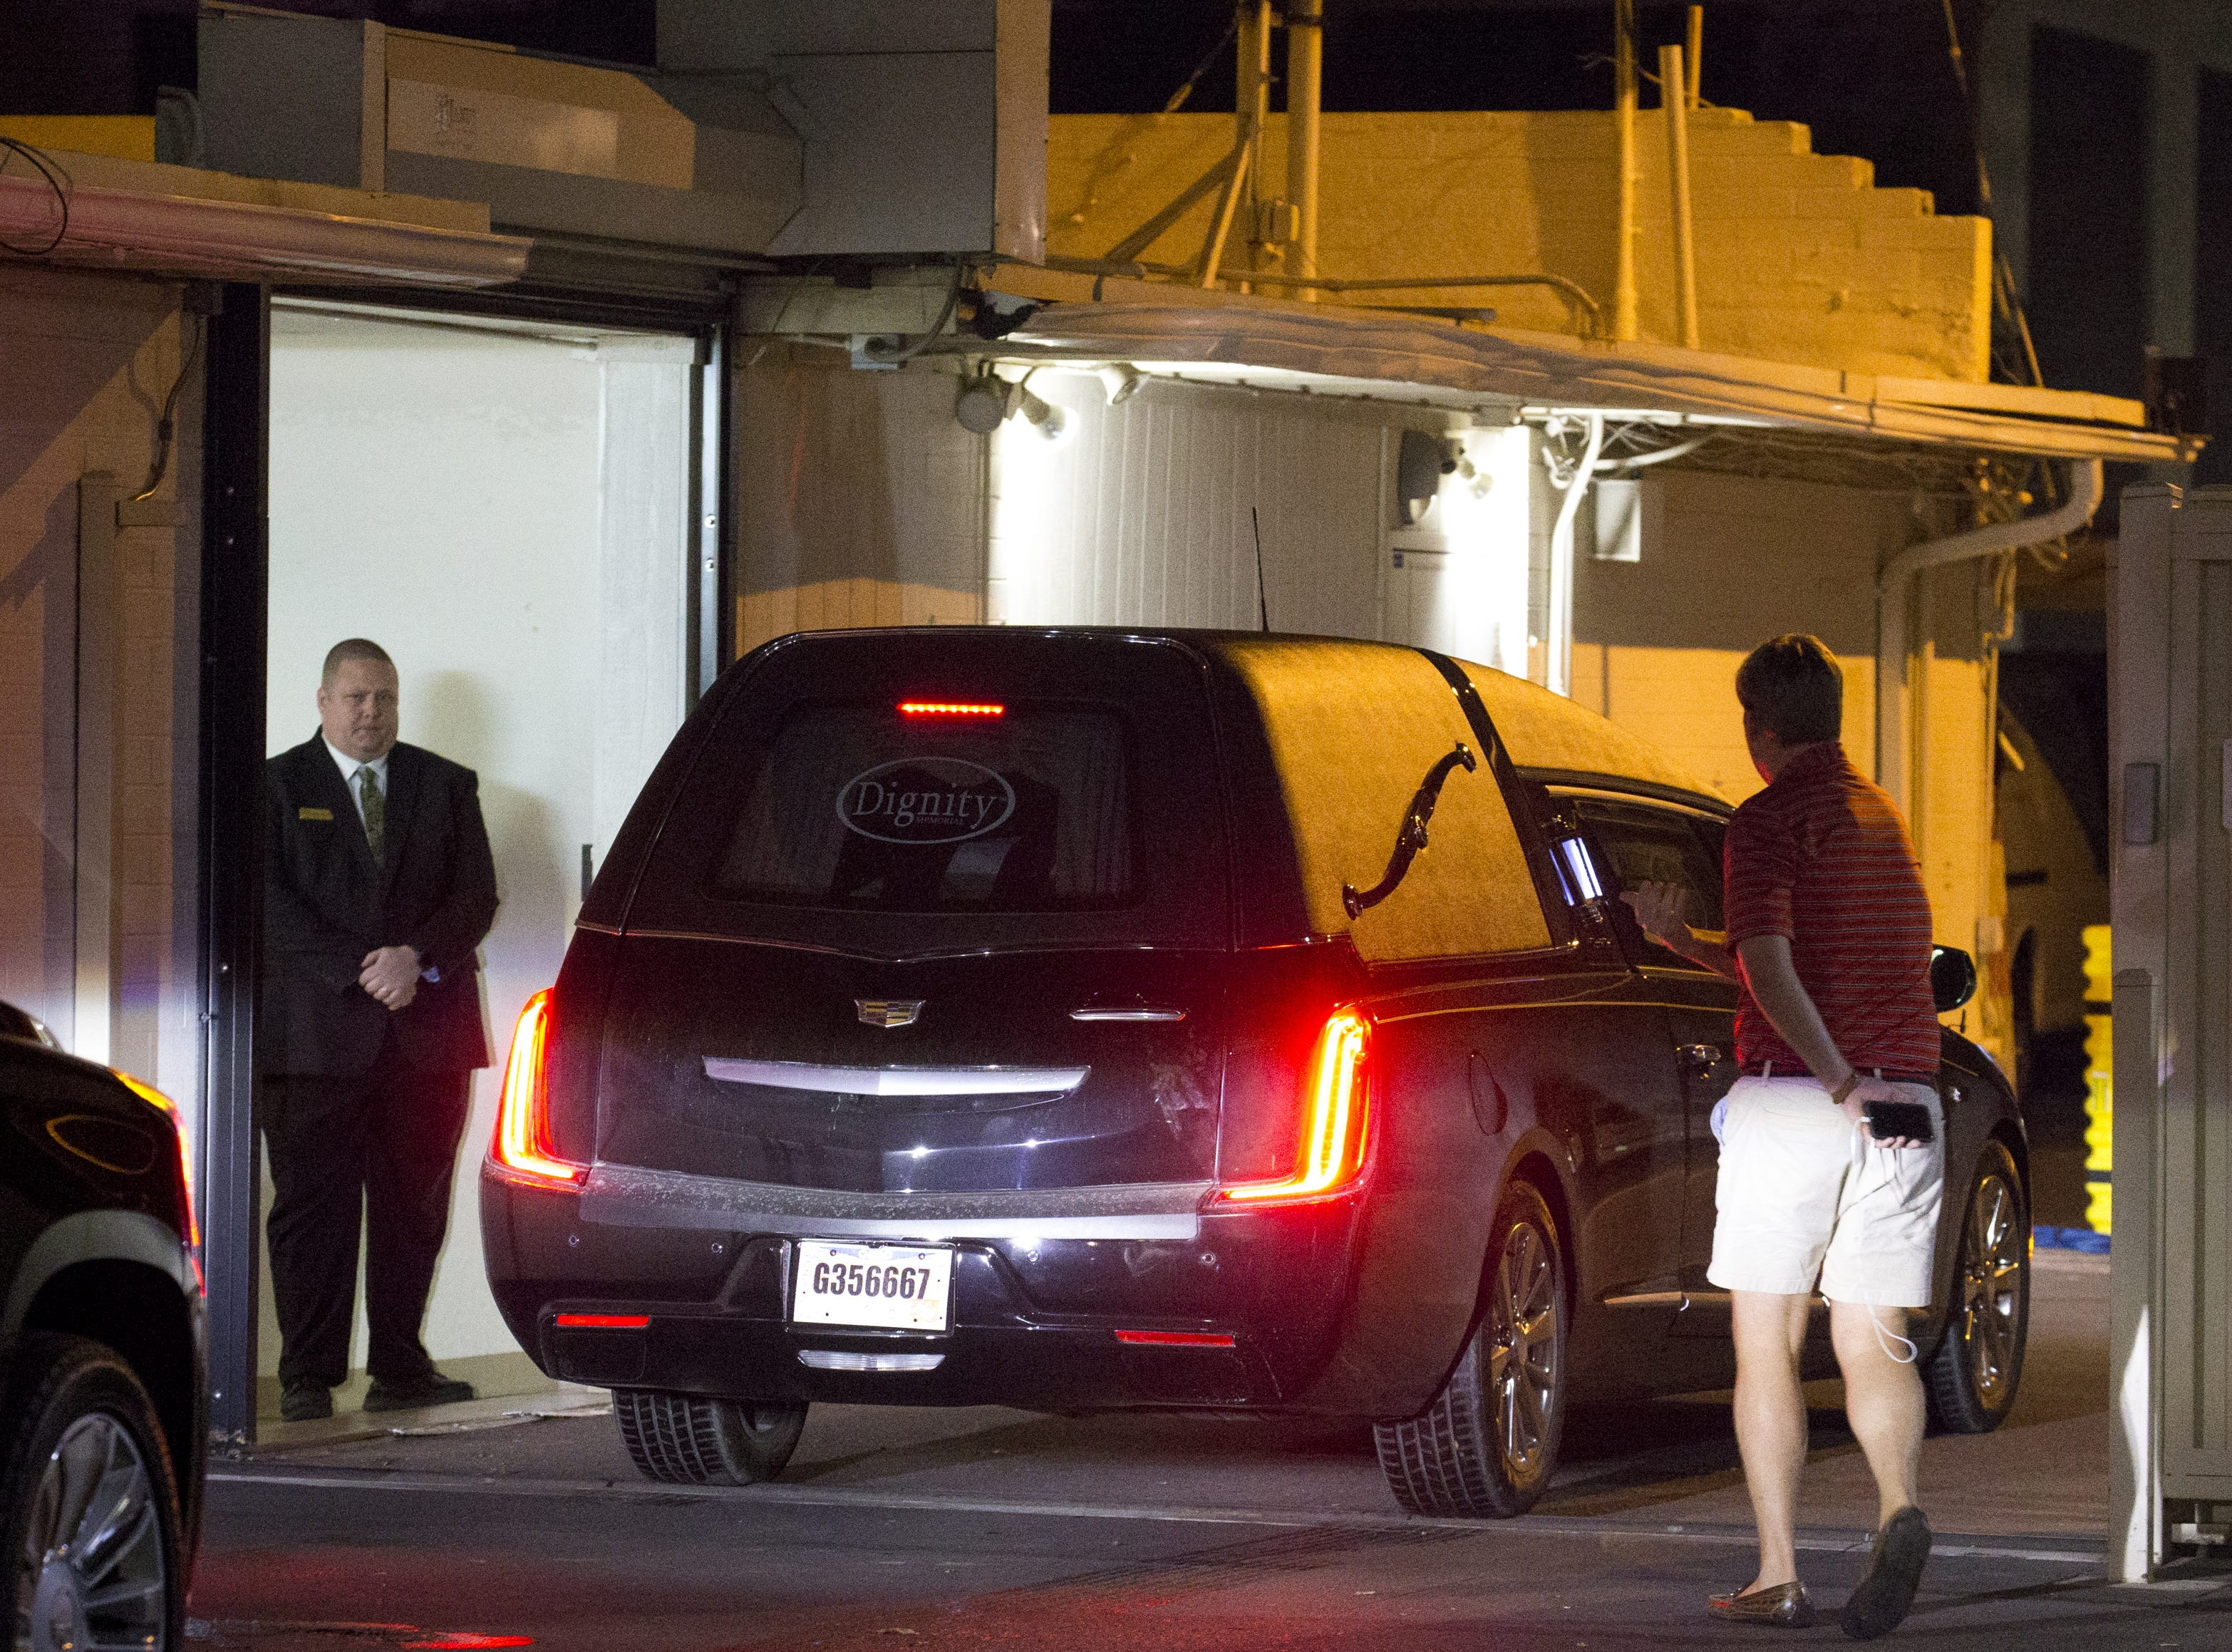 The hearse carrying the body of Sen. John McCain arrives at the A. L. Moore Grimshaw Mortuary on Aug. 25, 2018.